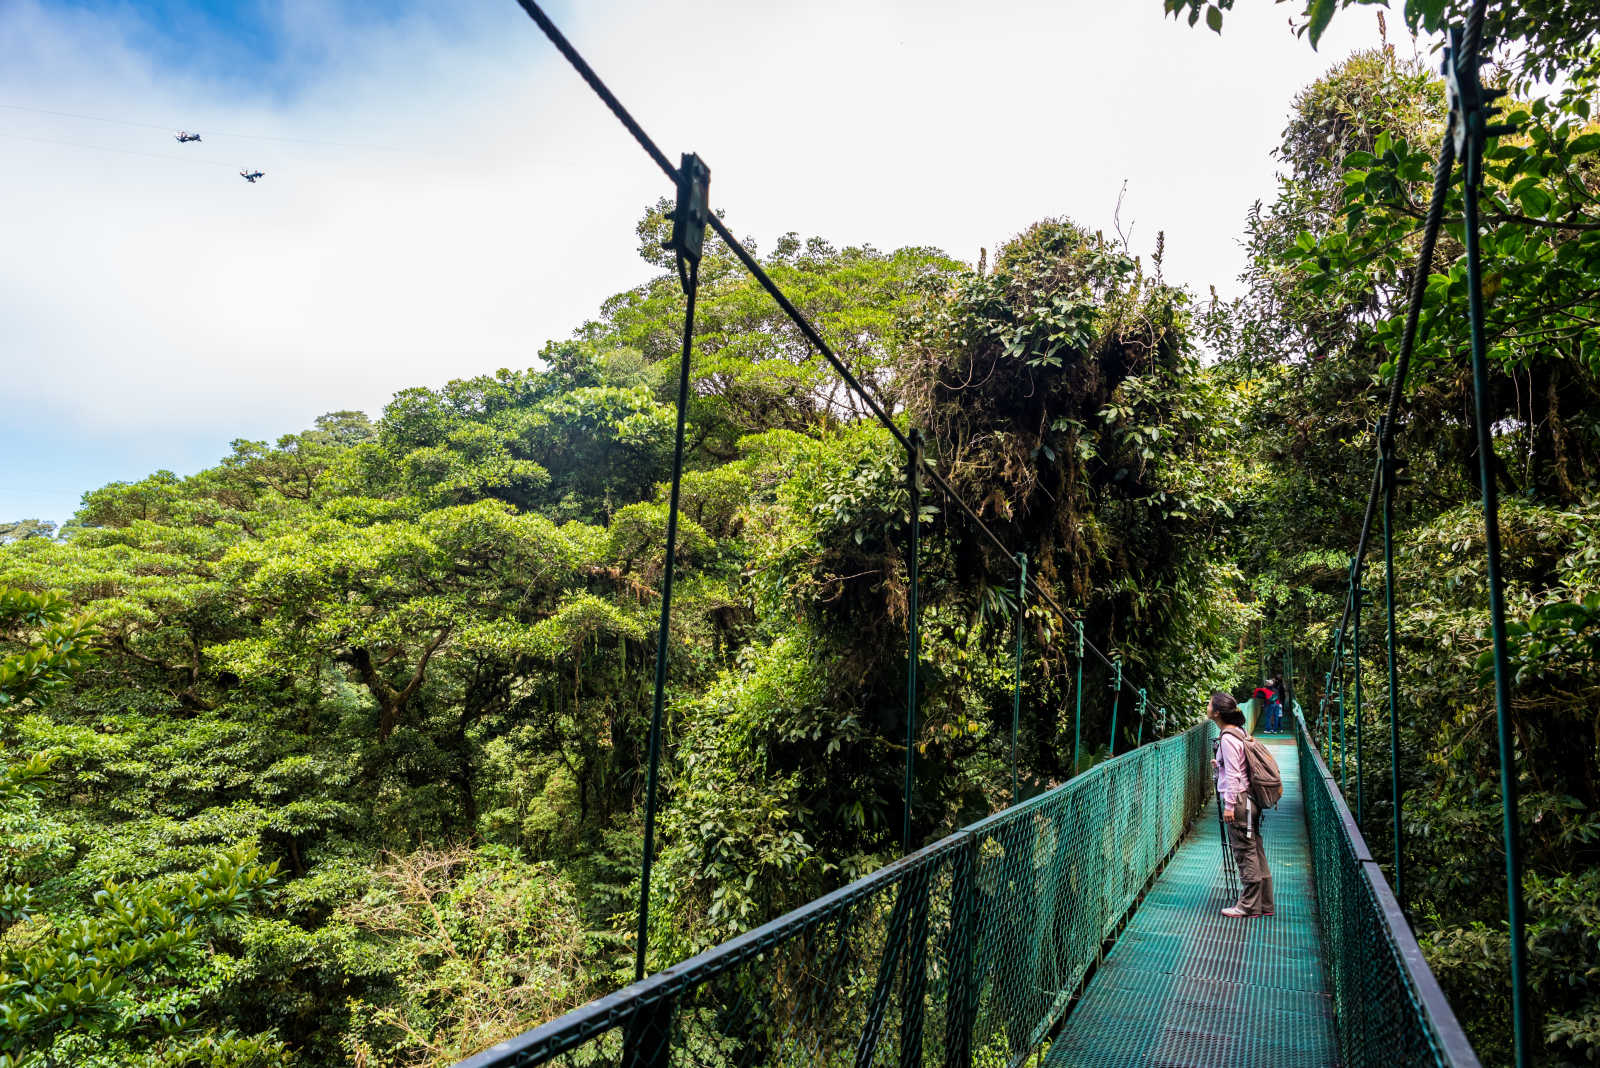 A hanging bridge in Monteverde, Costa Rica